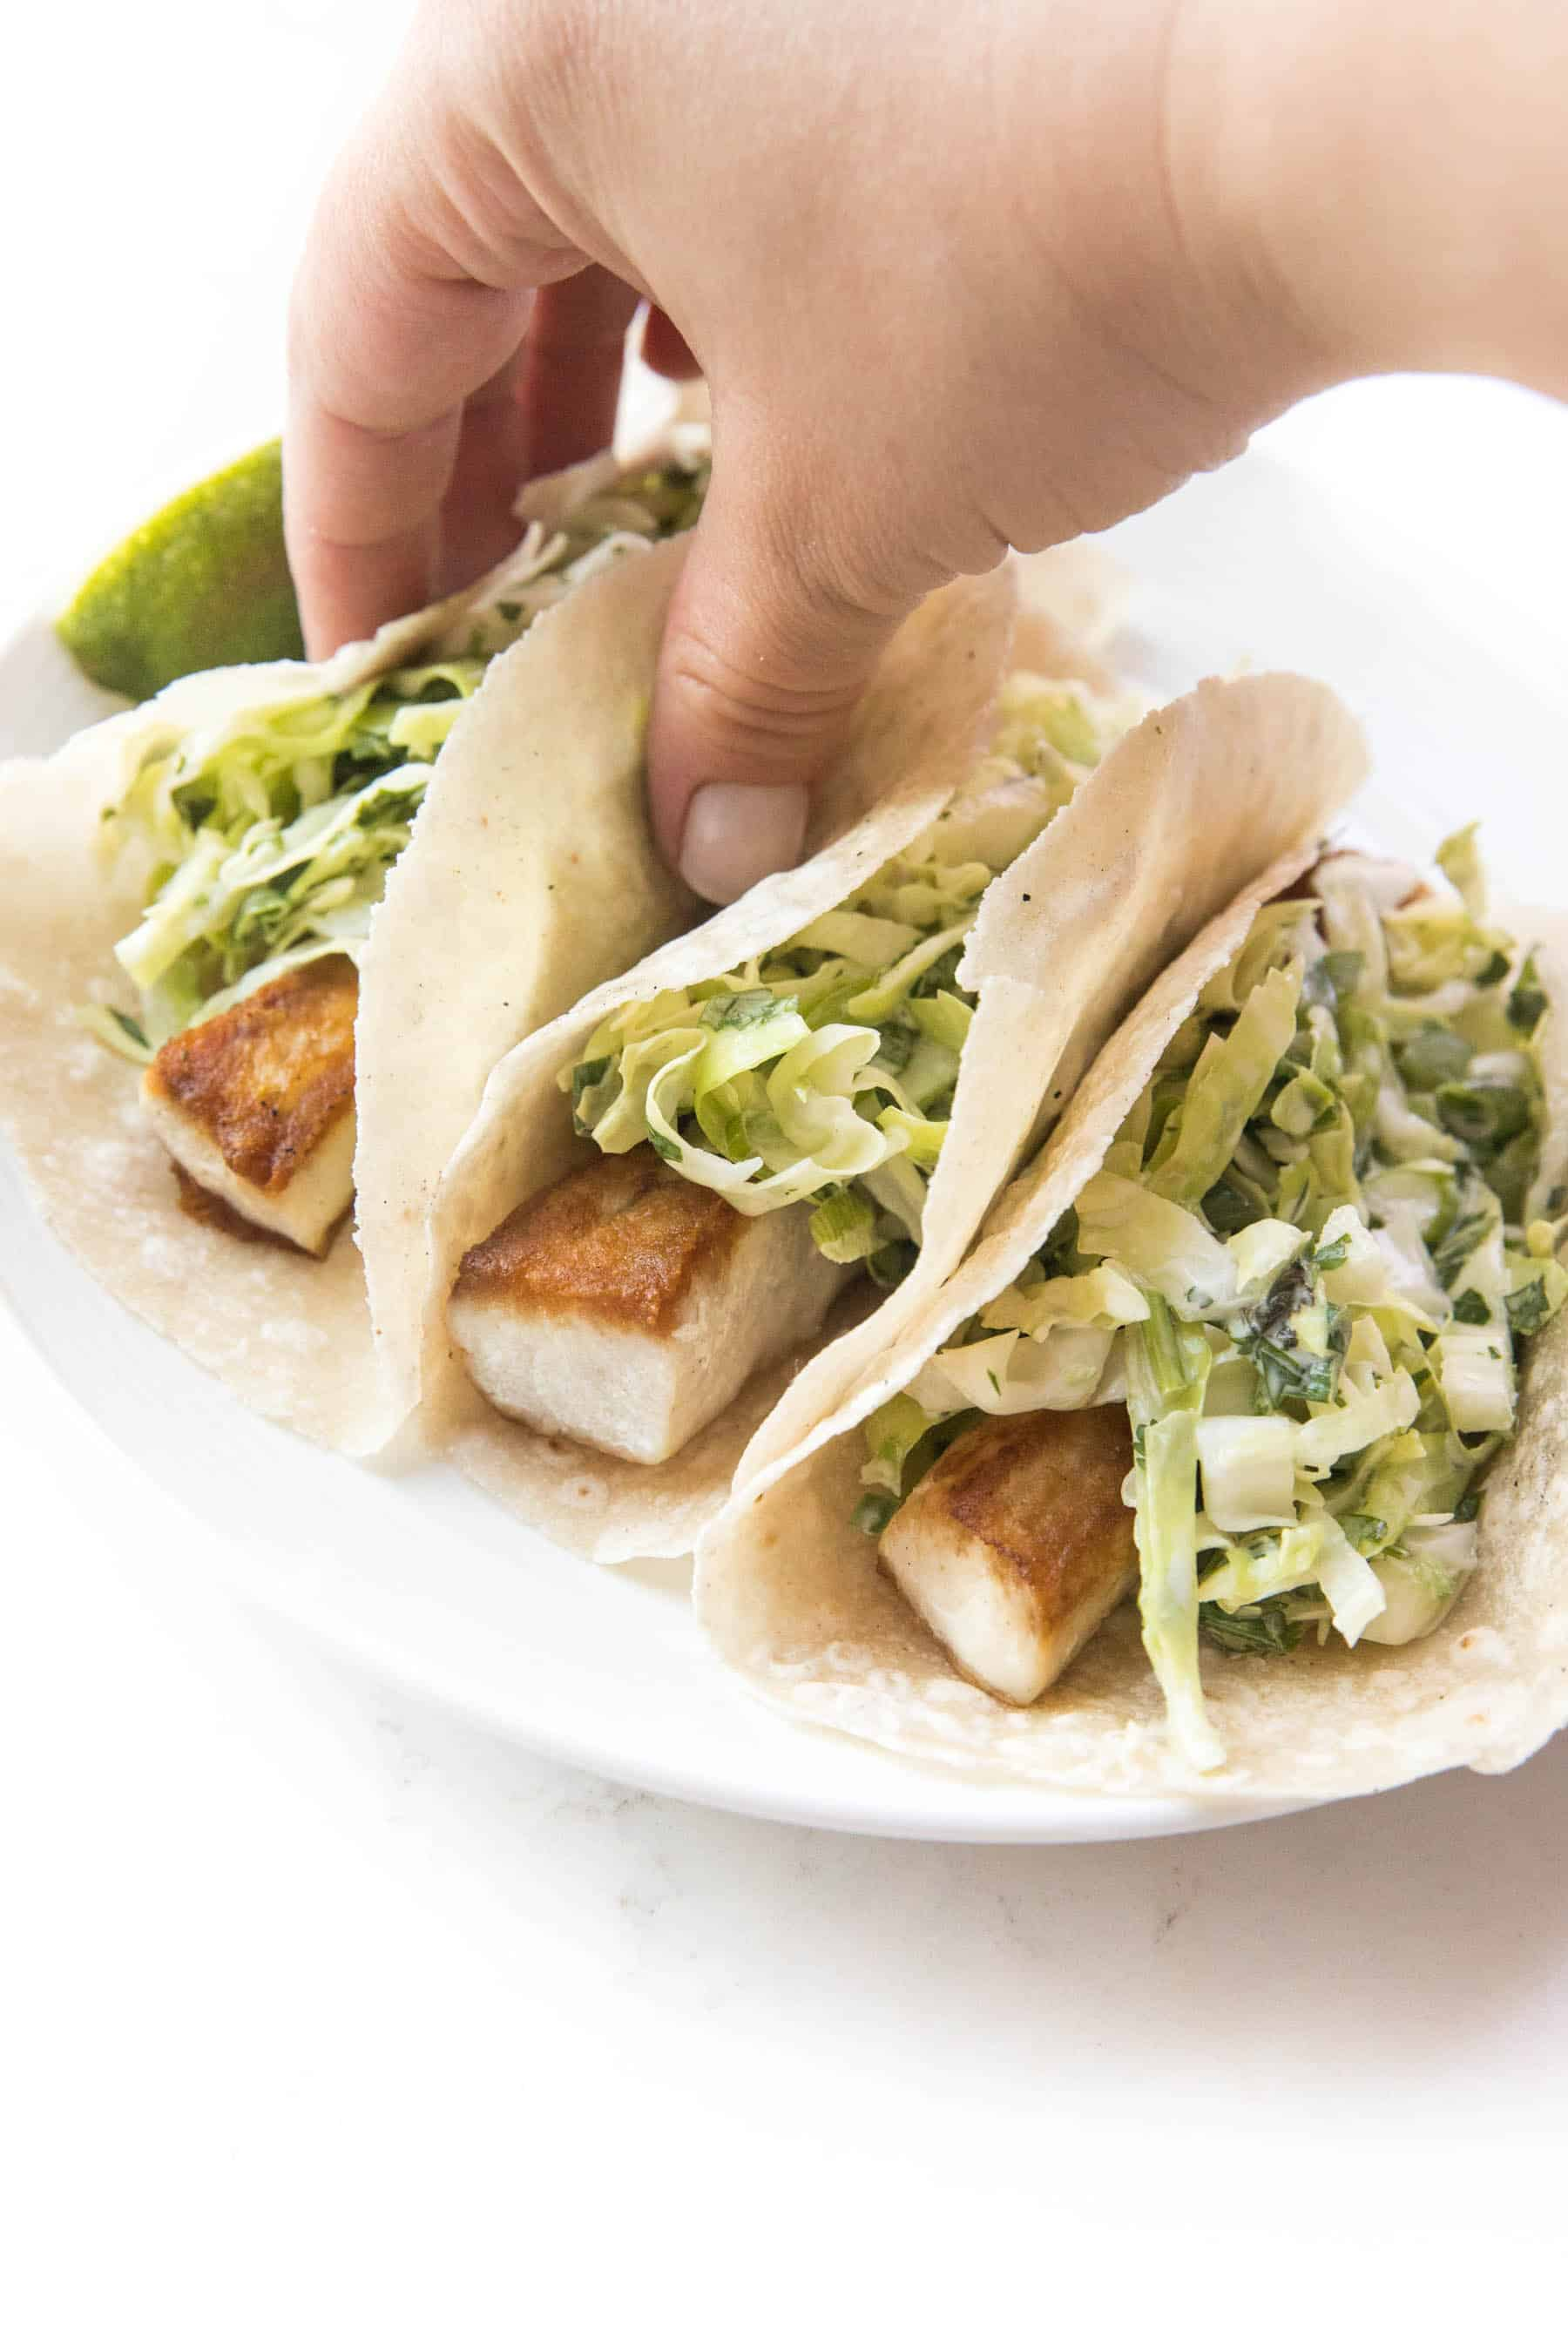 hand grabbing a fish tacos topped with coleslaw on a white background